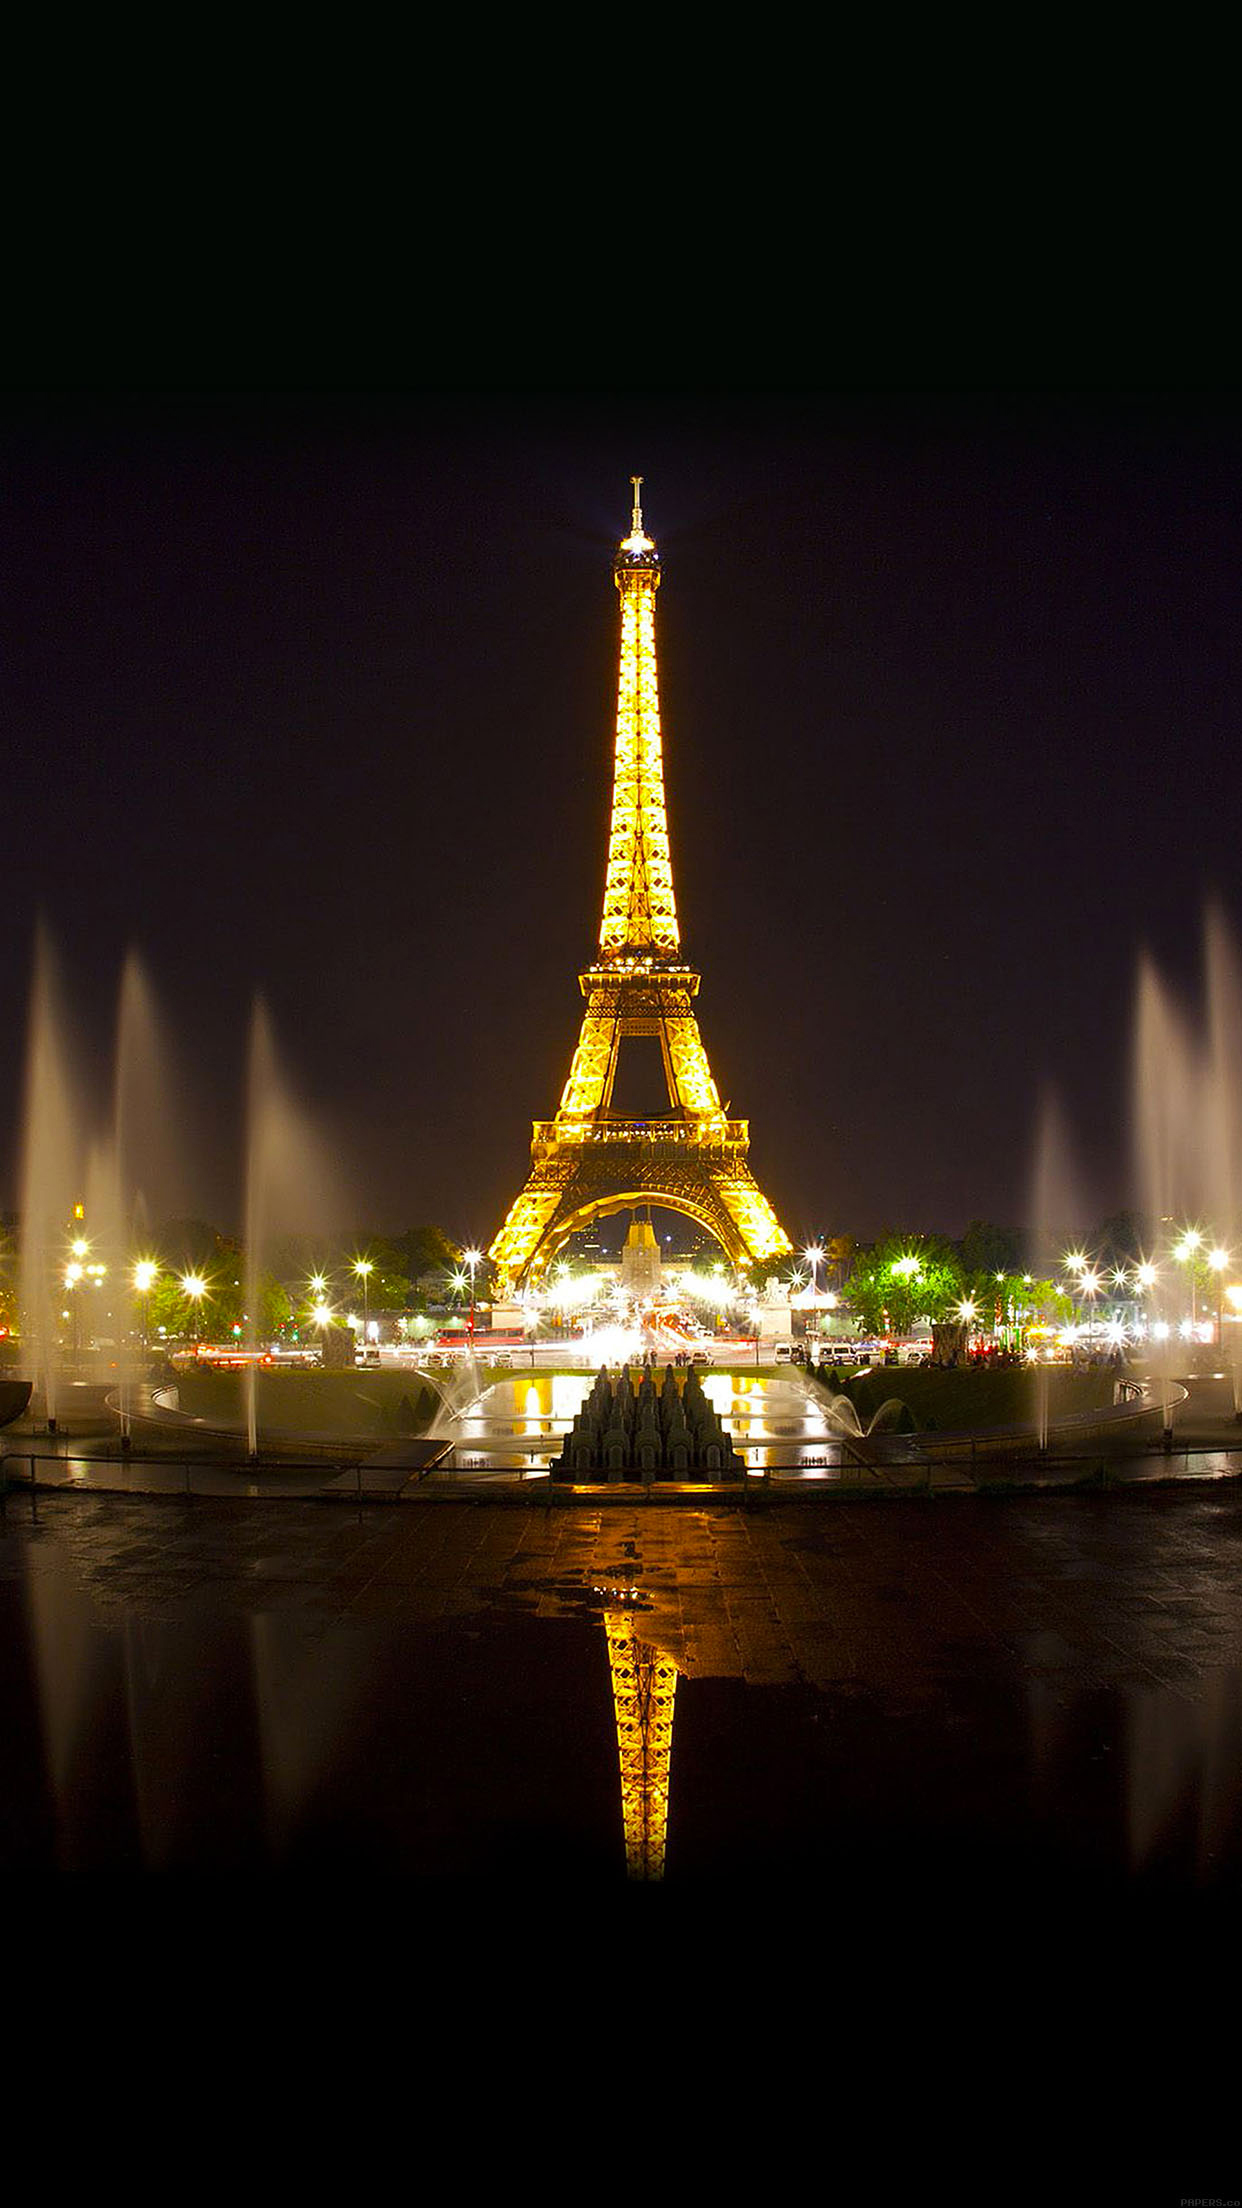 Paris By Night Eiffel Tower Wallpaper For Iphone X 8 7 6 Free